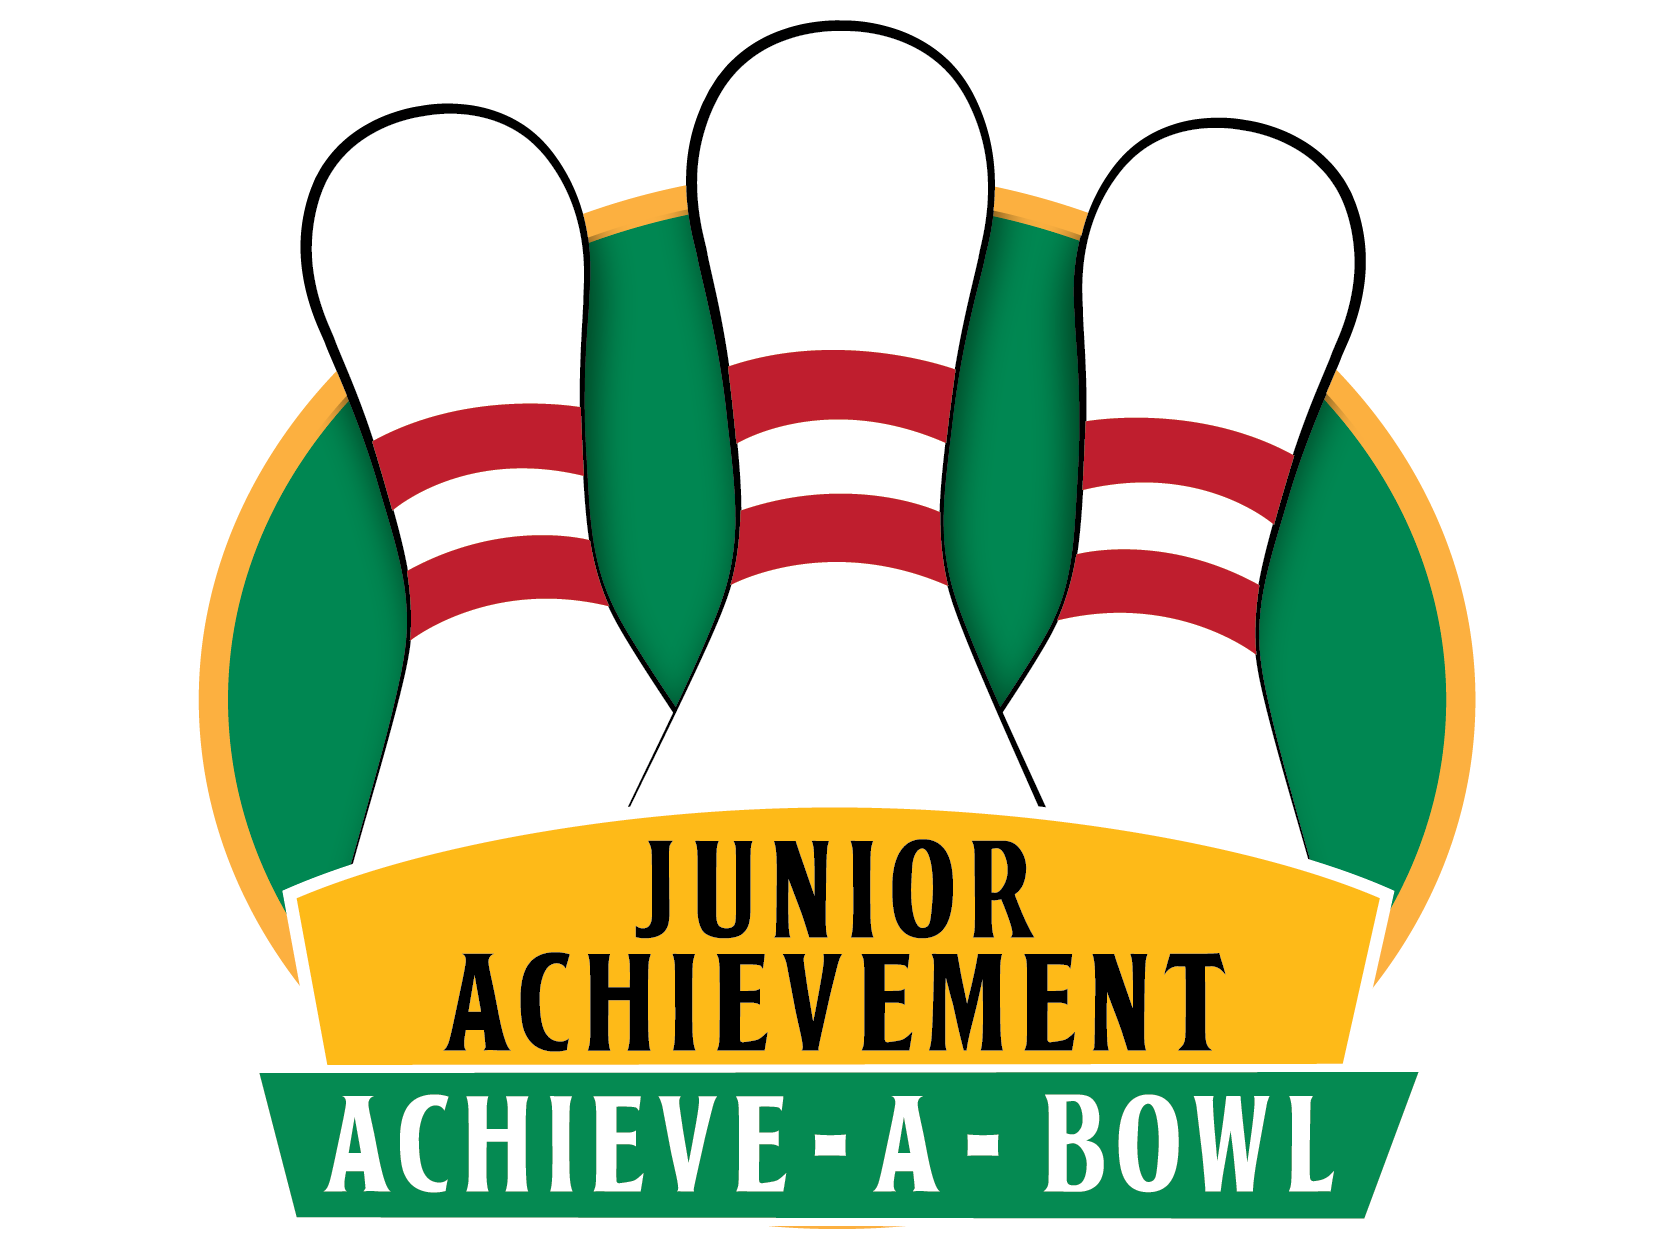 Junior Achievement Achieve-A-Bowl: November